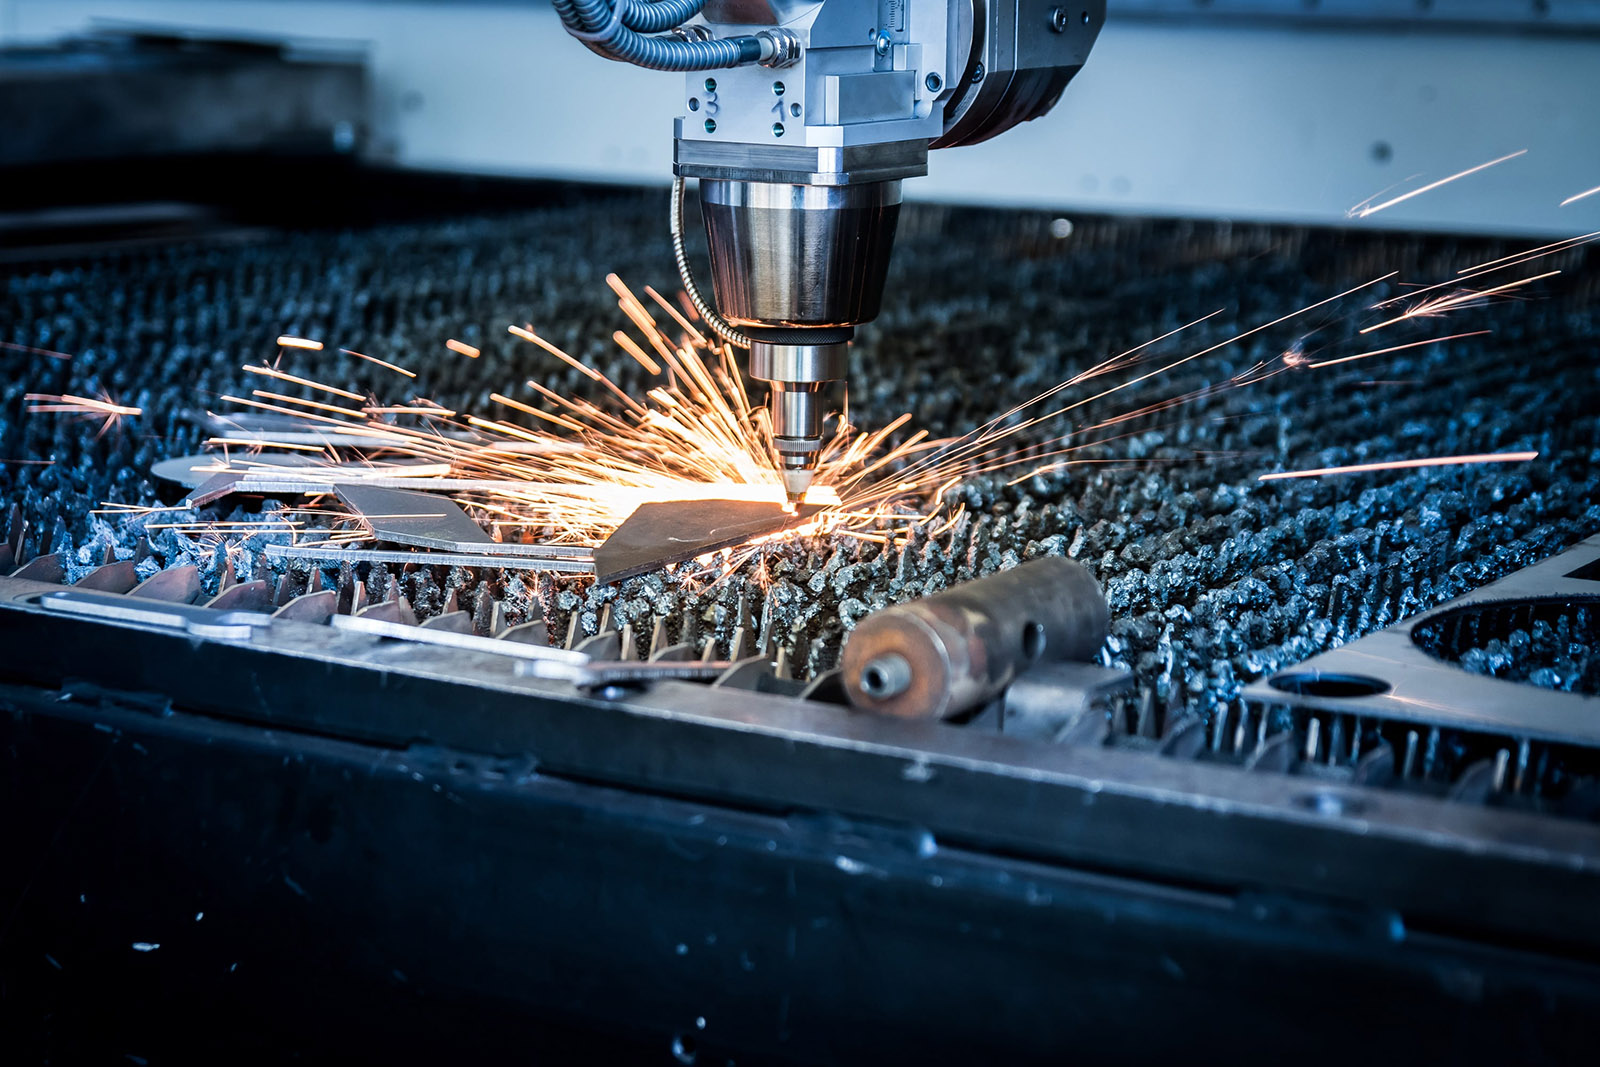 Robotic Arm Welding a Part in Production